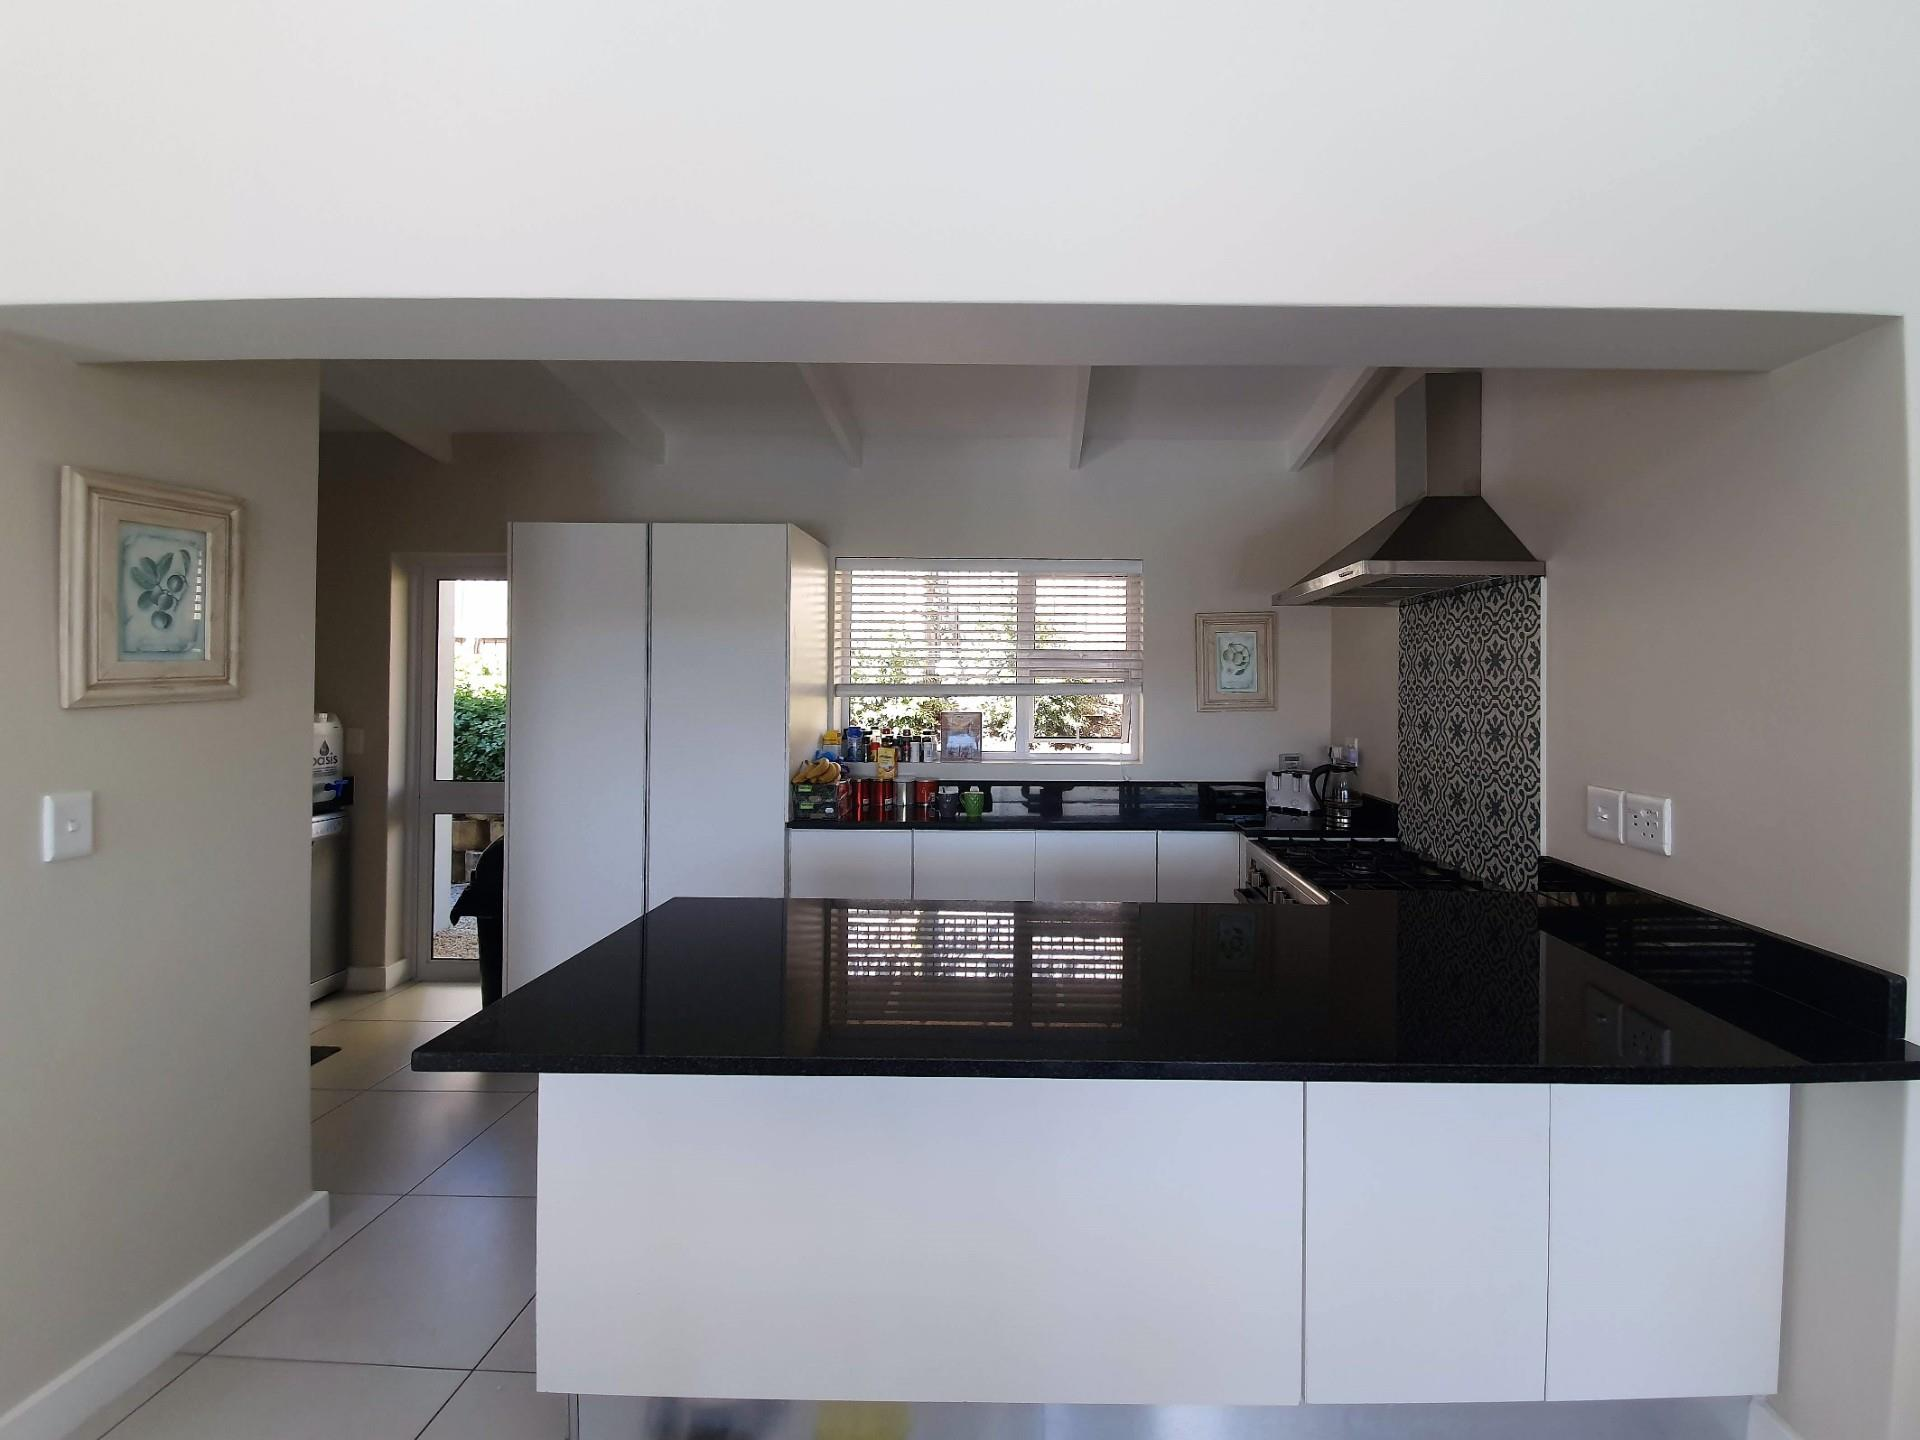 3 Bedroom House For Sale in Knysna Heights